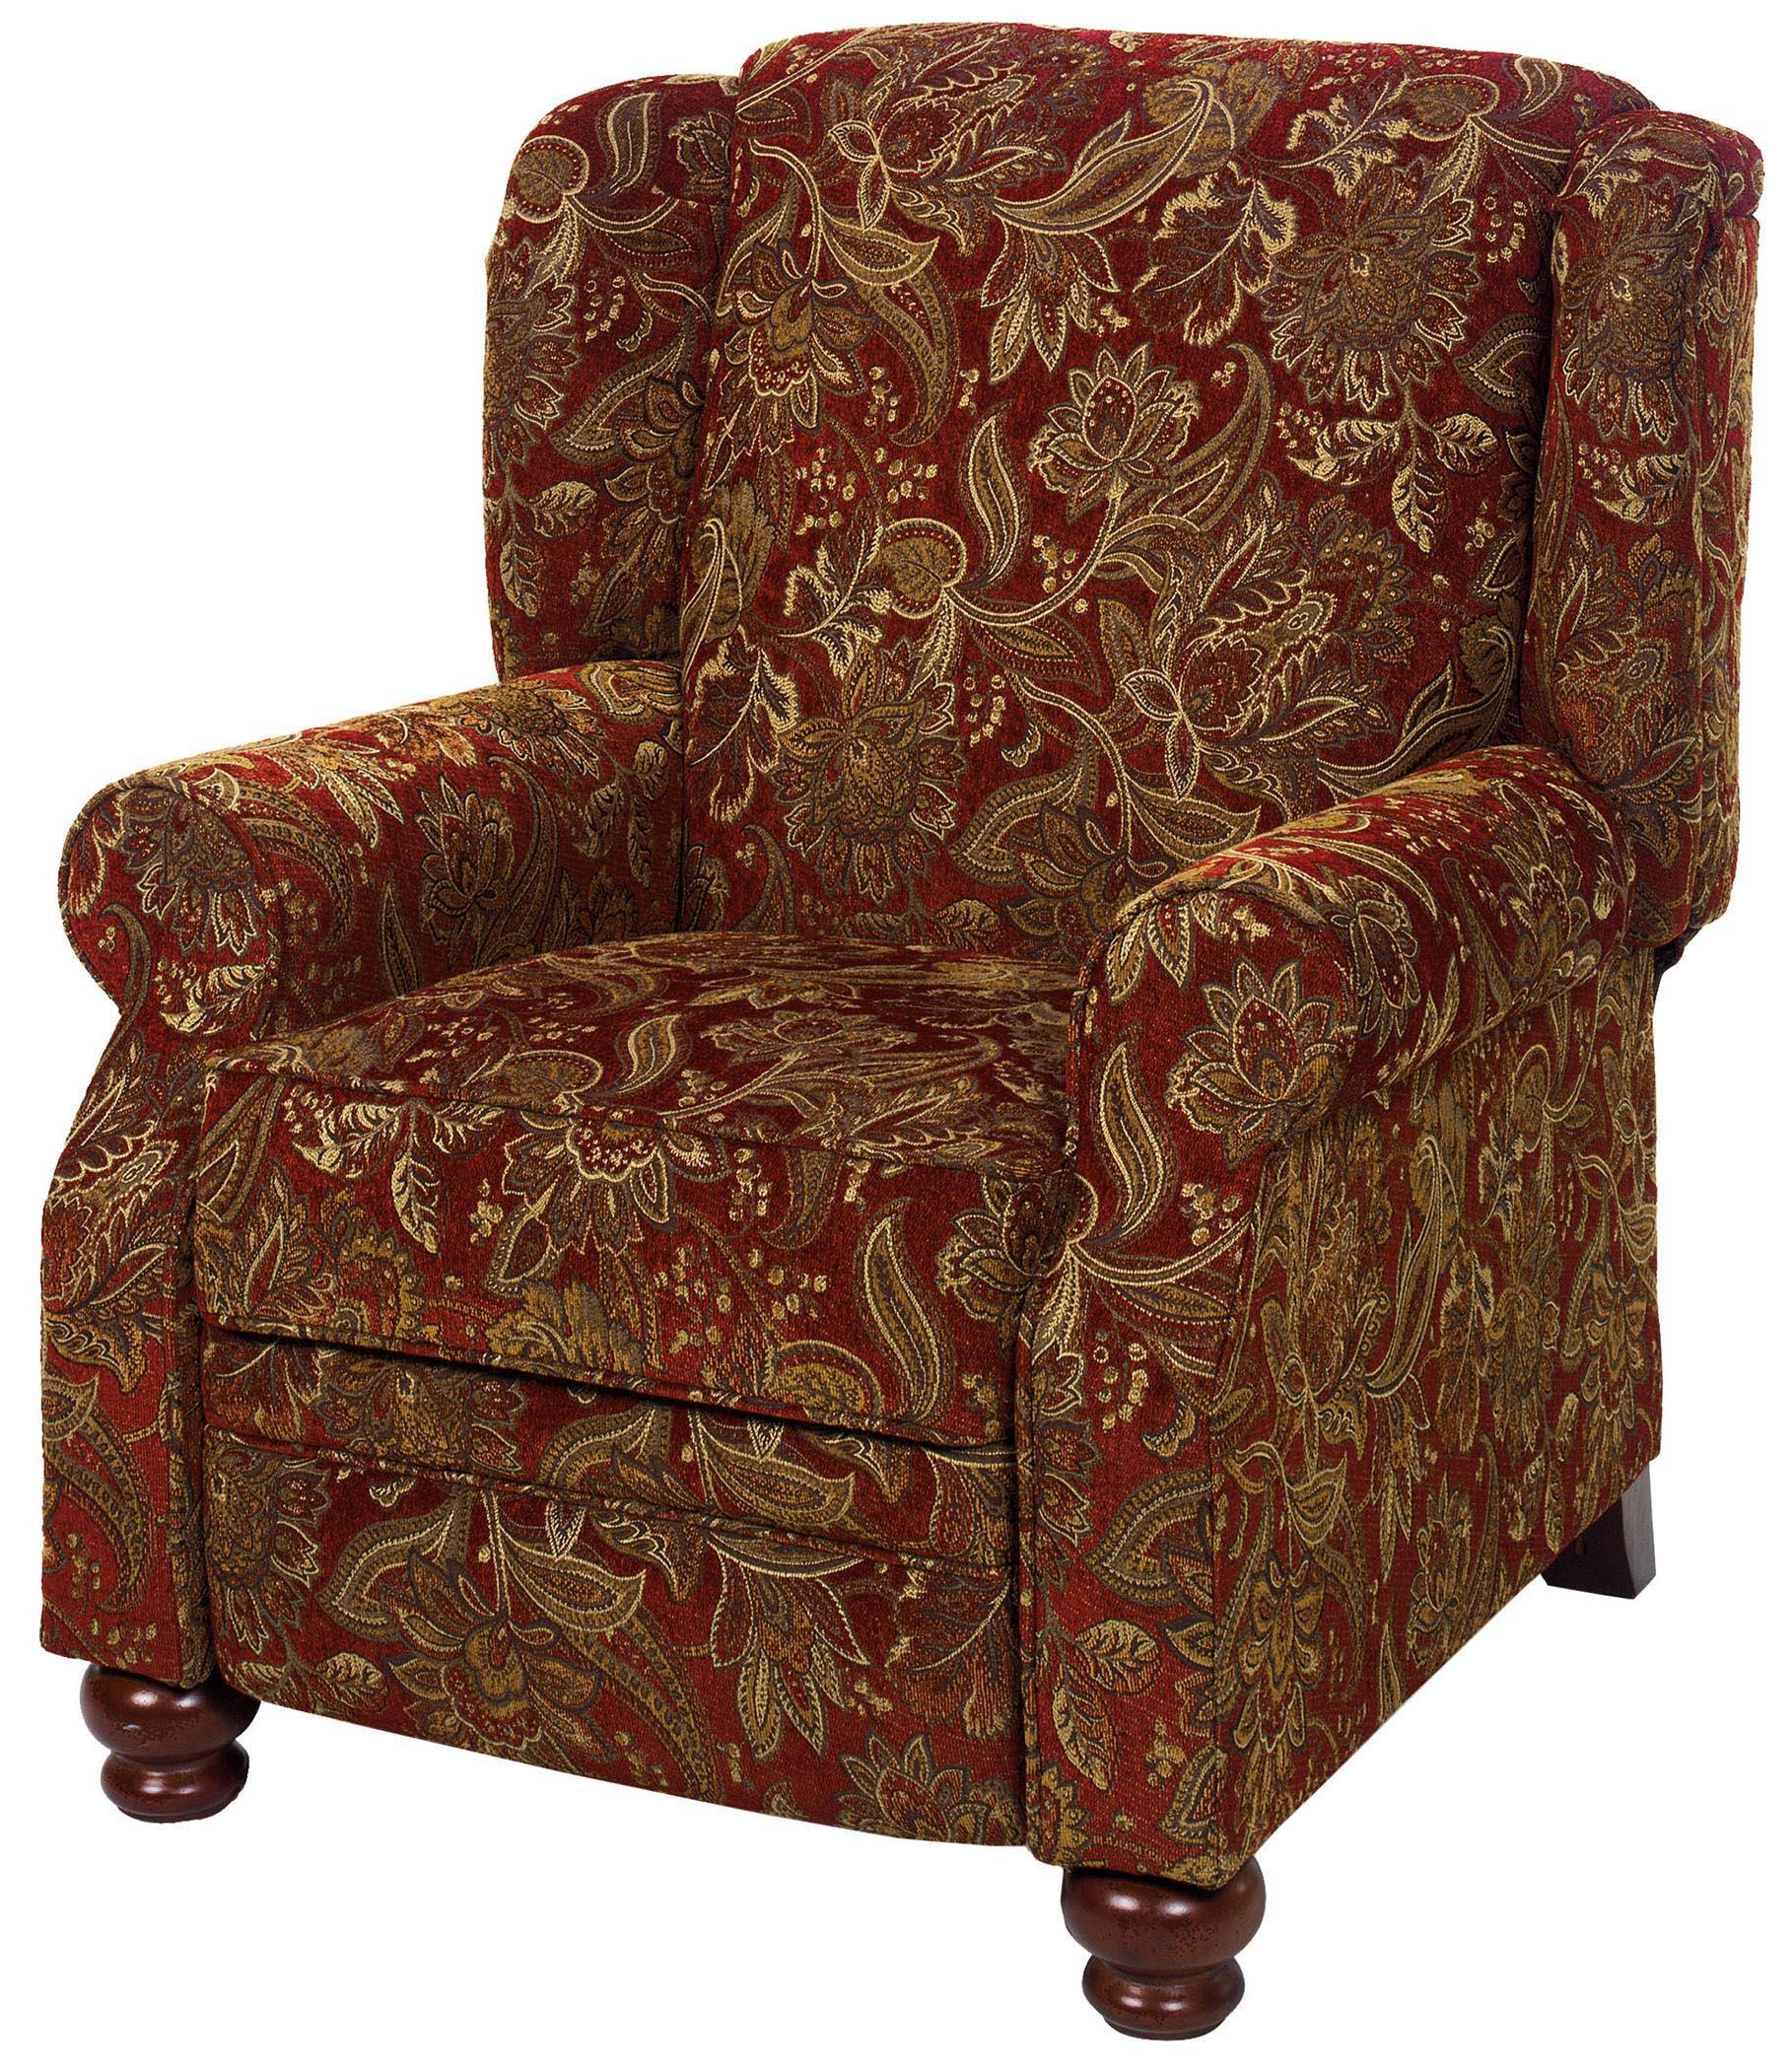 Awesome Pattern For High End Recliners  sc 1 st  HomesFeed : high end recliners chairs - Cheerinfomania.Com